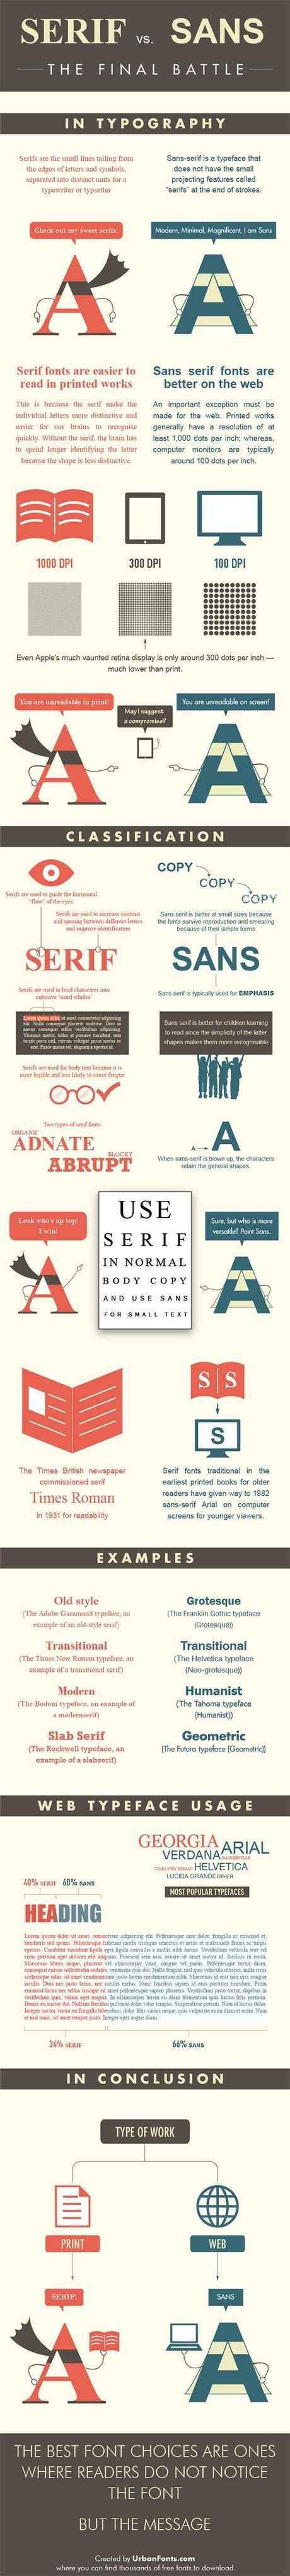 When To Use Serif vs Sans Infographic